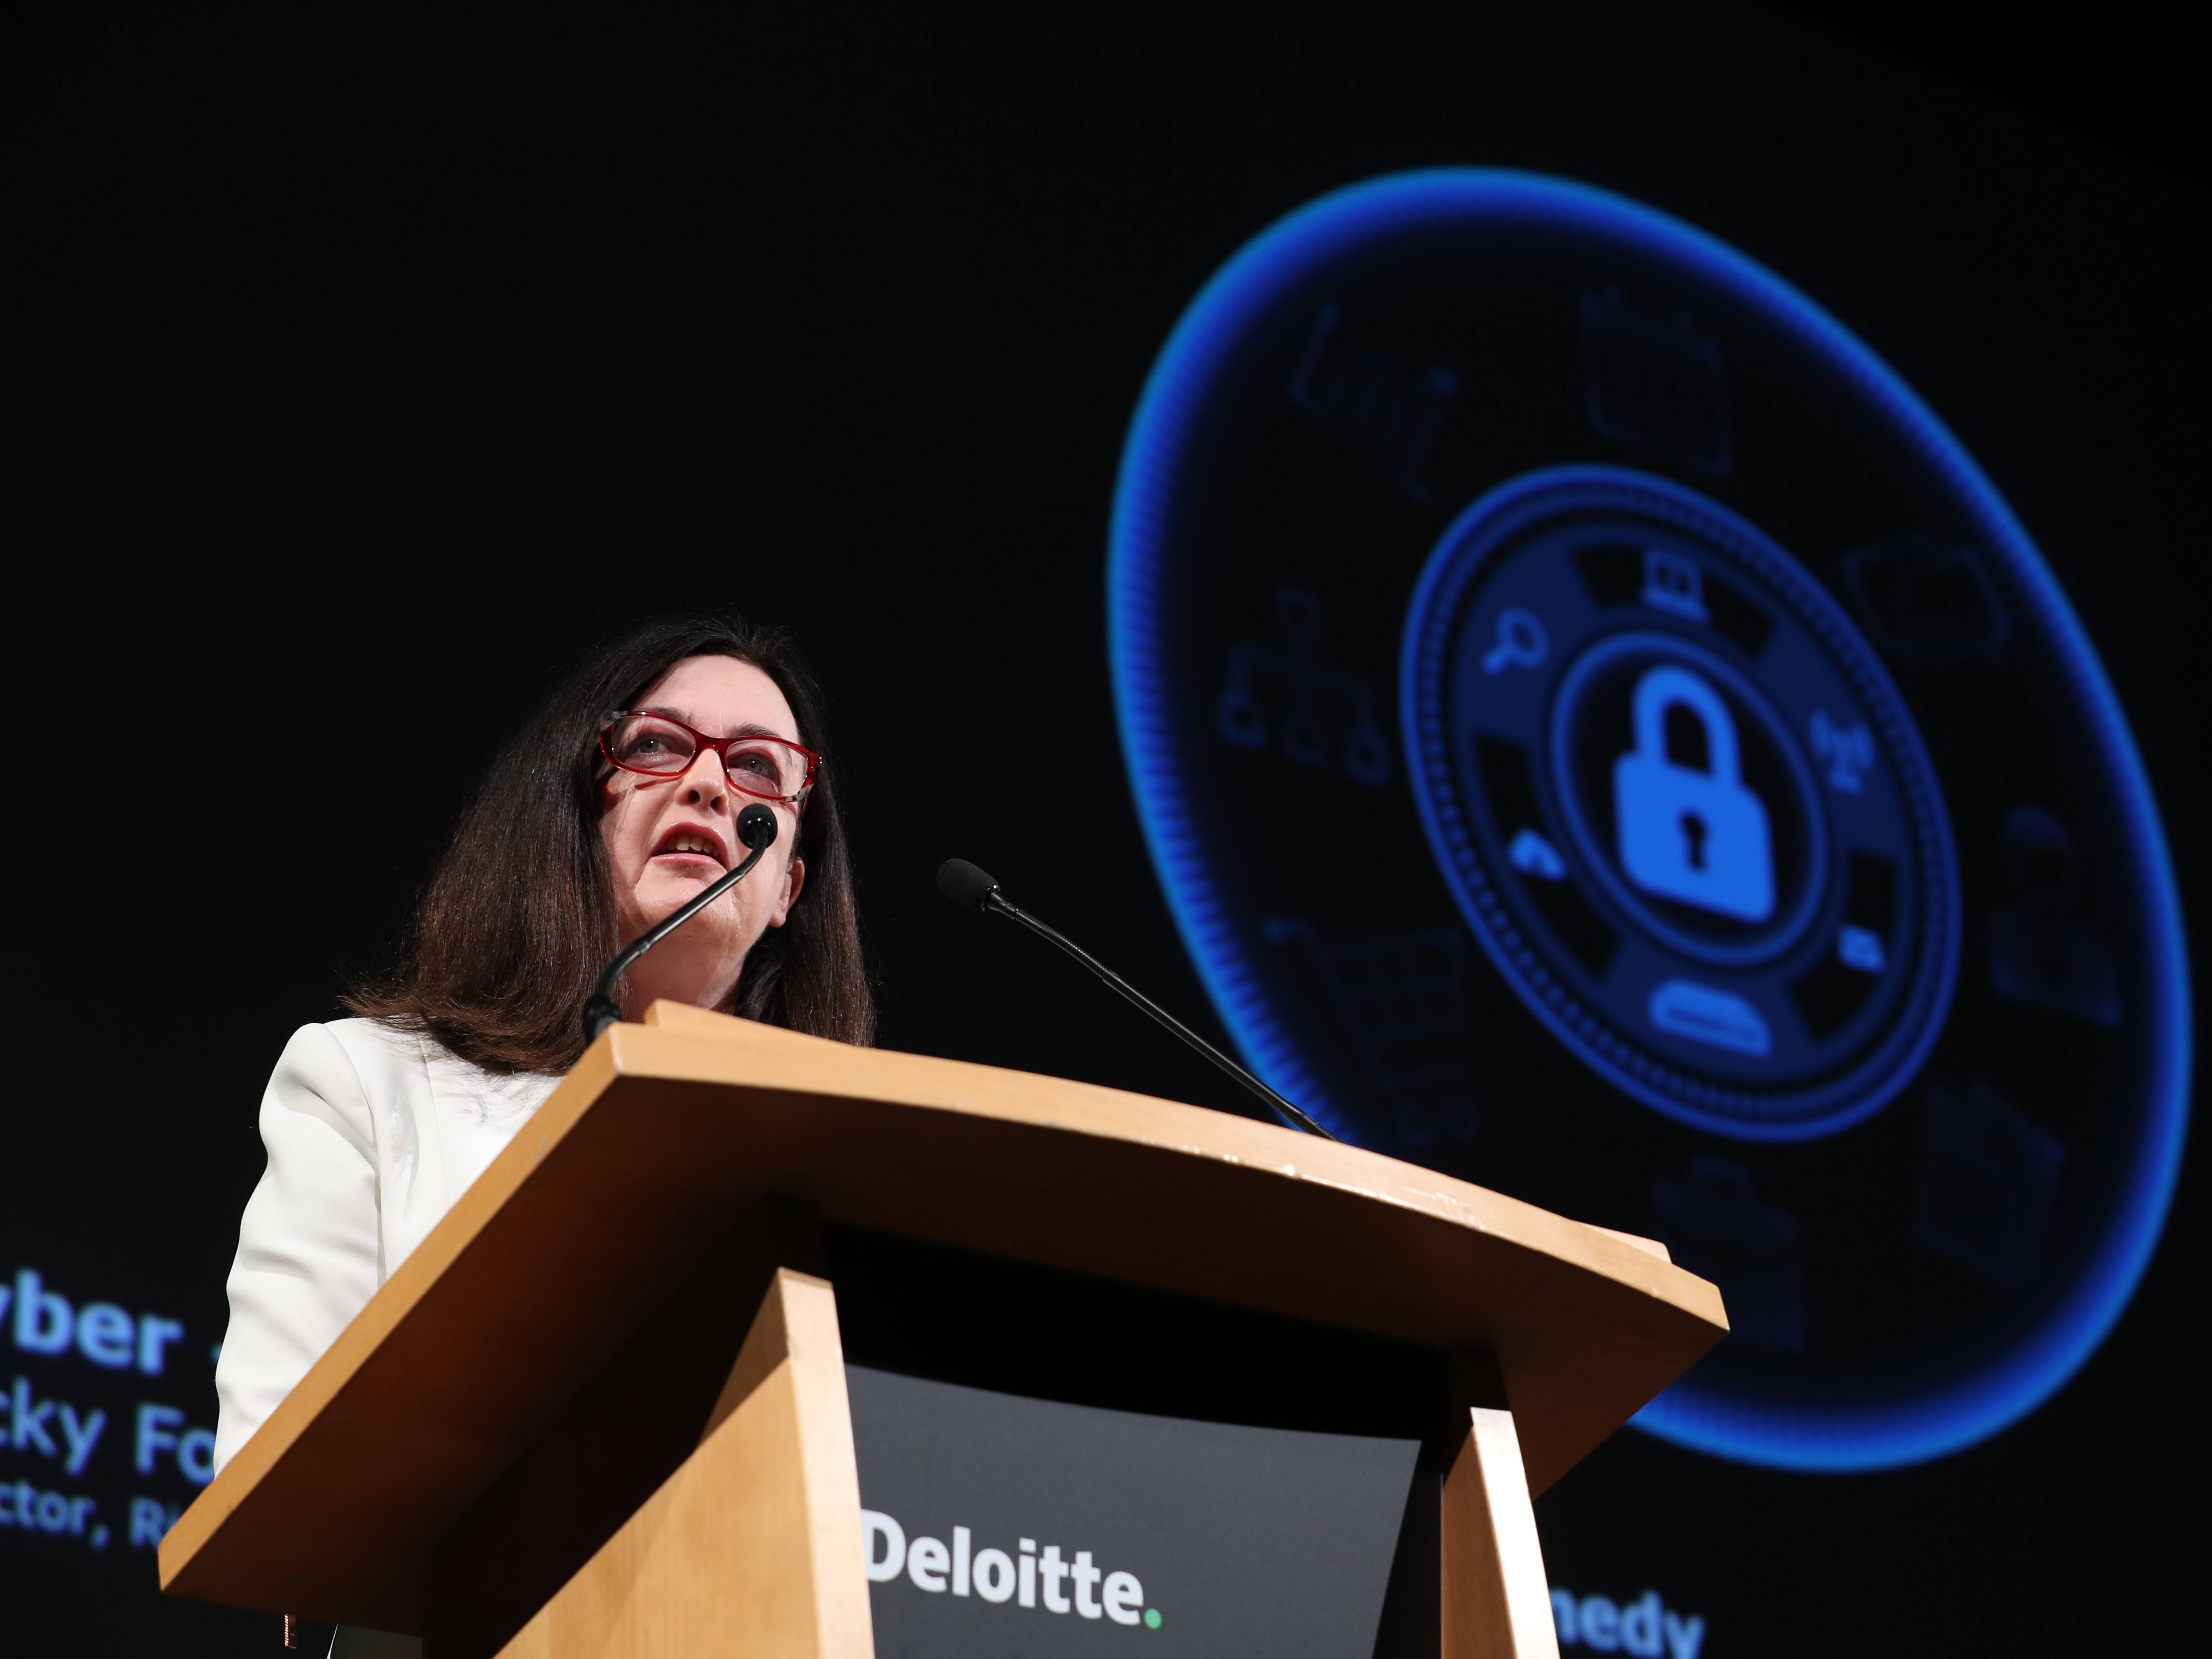 Deloitte's Jacky Fox: 'The cybercriminal is becoming more automated'